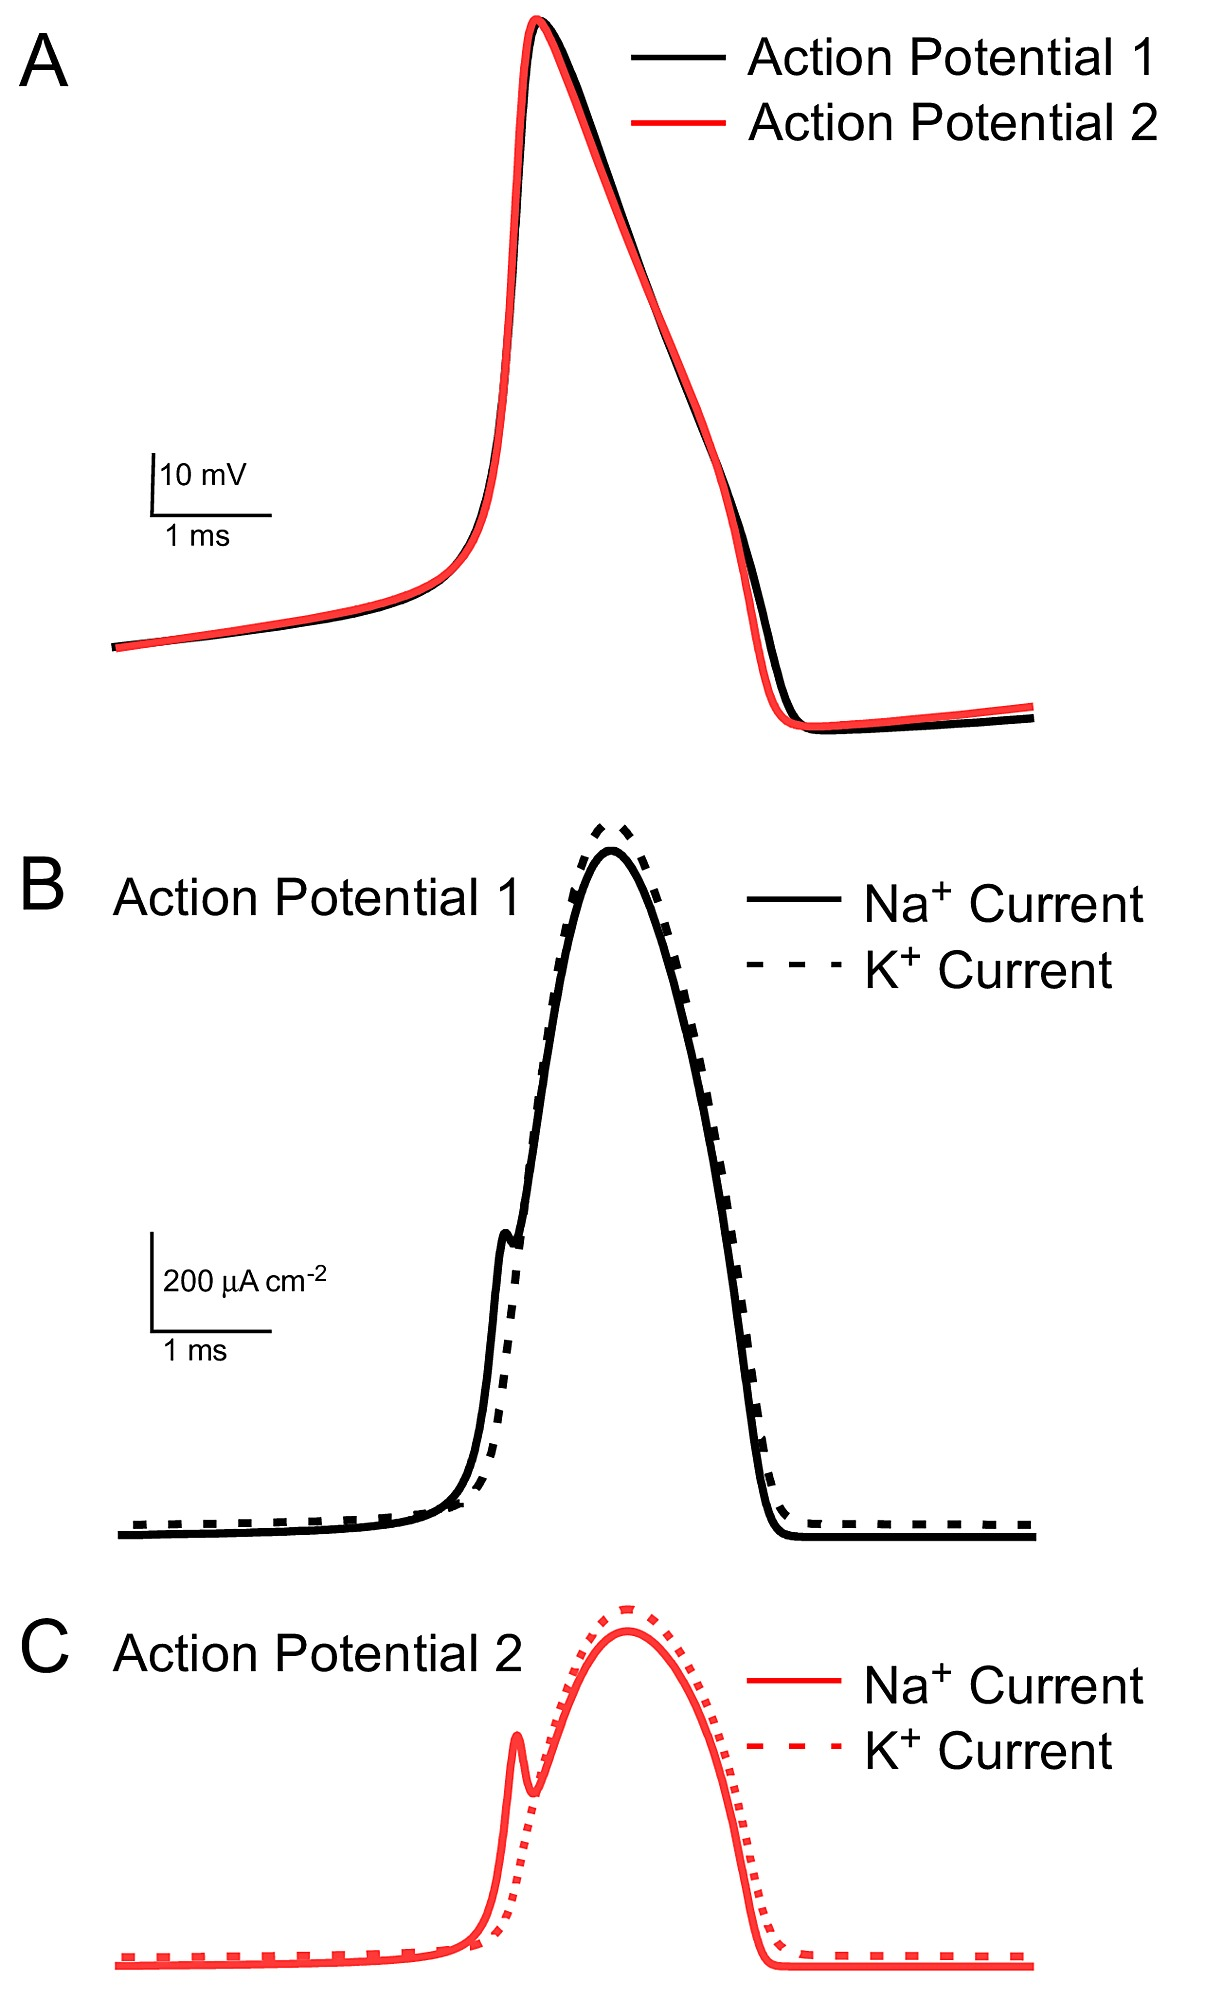 Action Potential Energy Efficiency Varies Among Neuron Types In Orbit Pump Start Relay Wiring Diagram Figshare